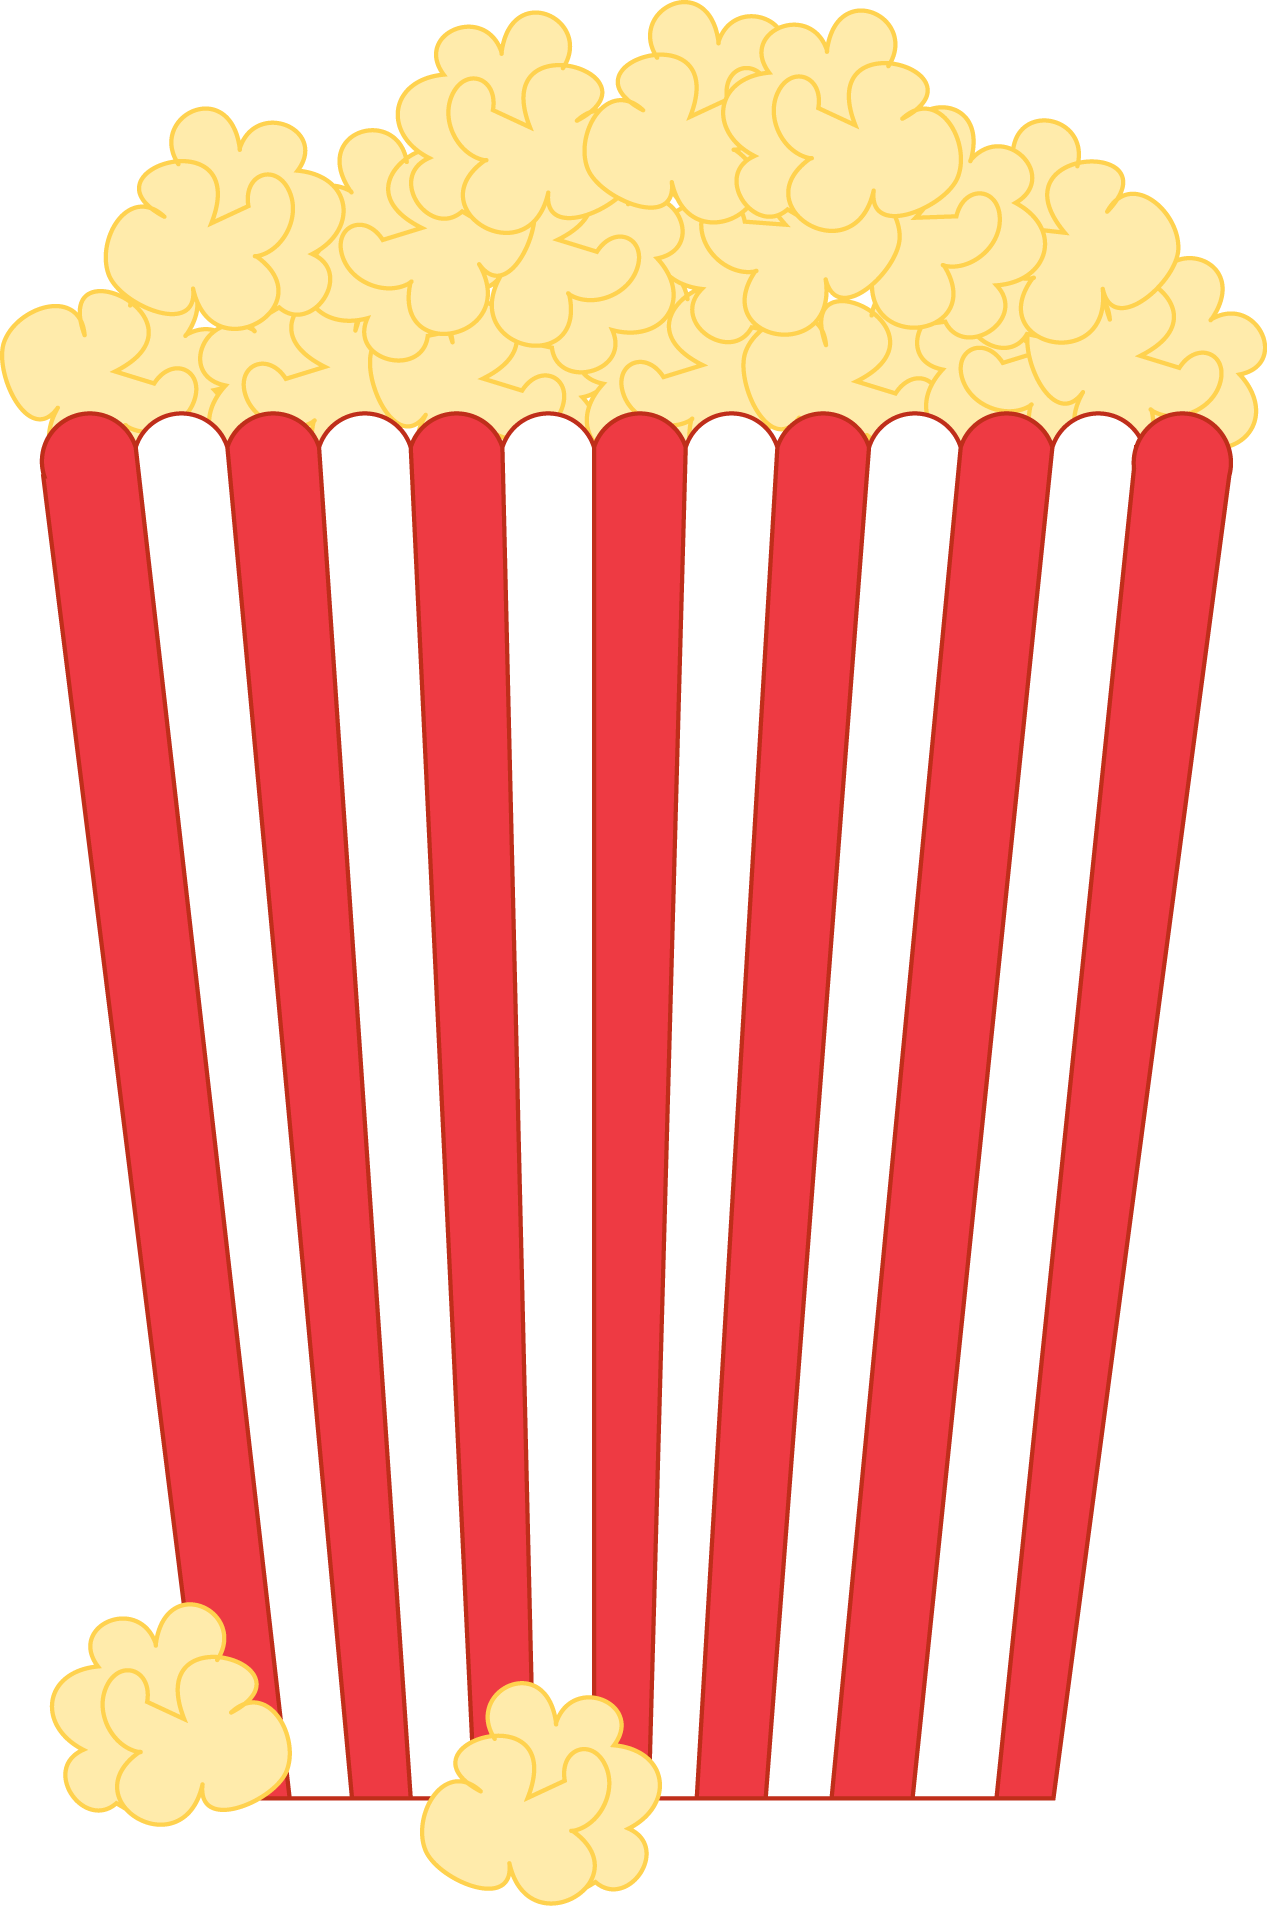 Carnival transparent popcorn. Food clipart library